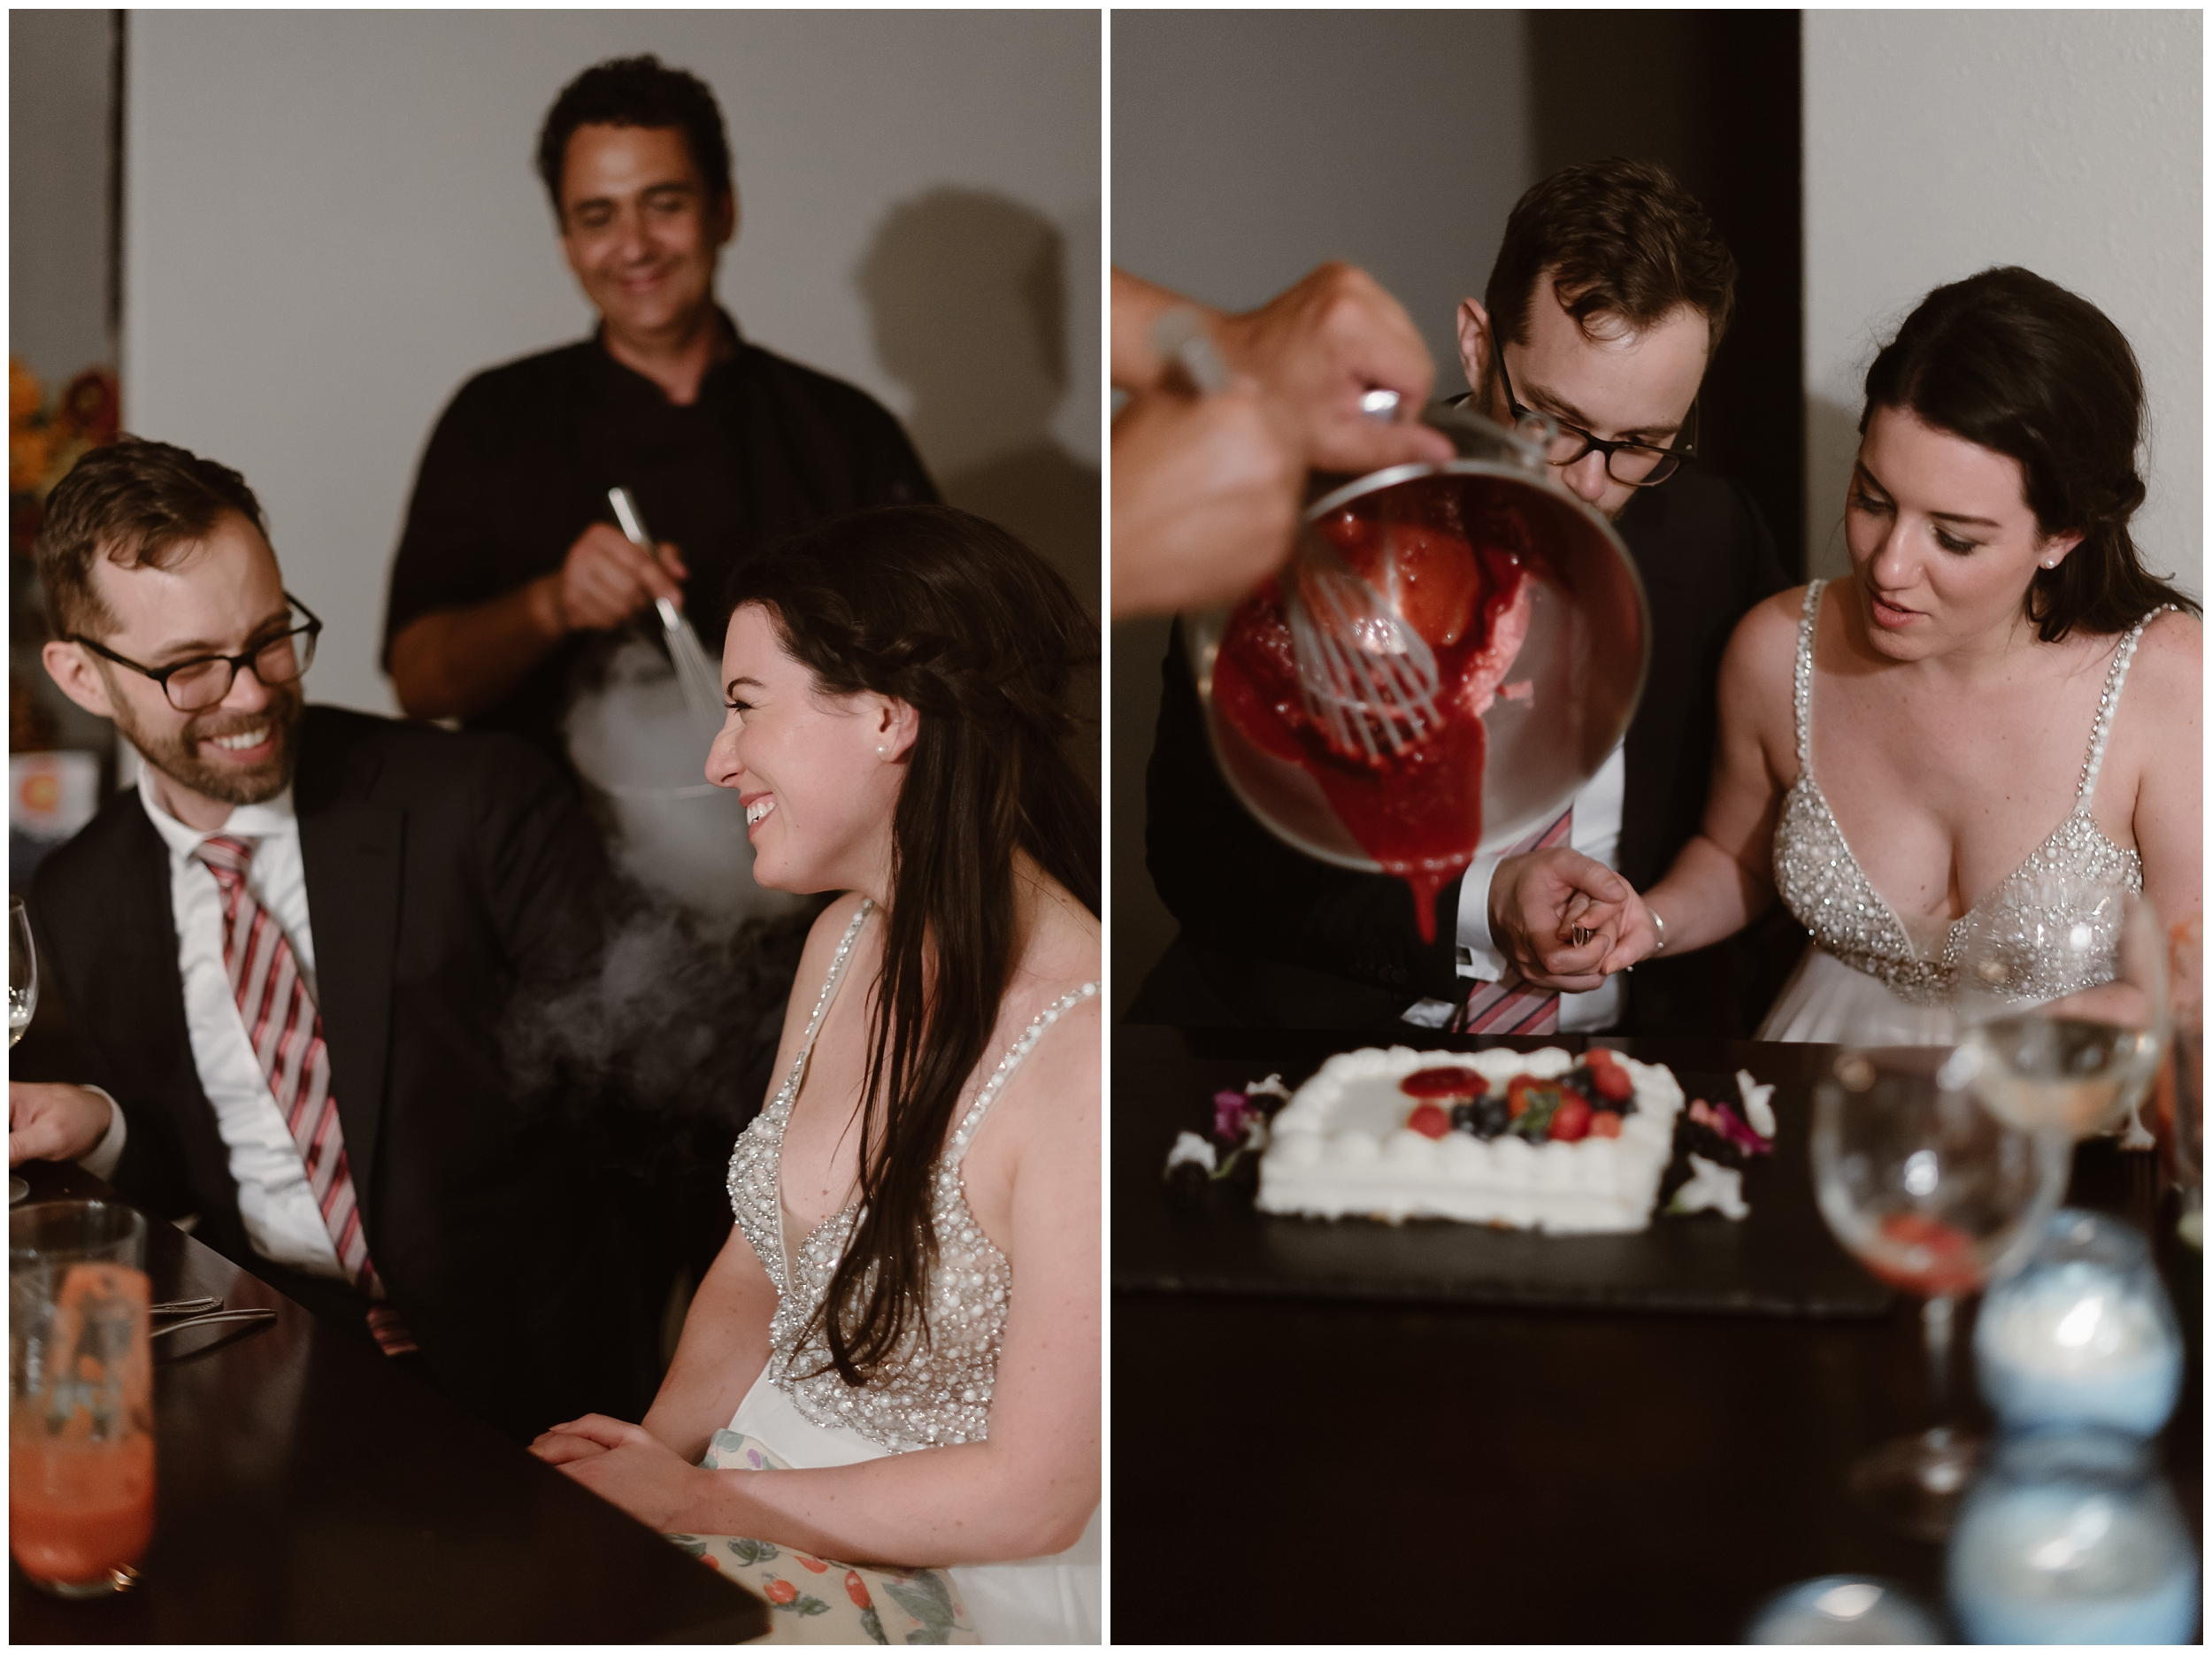 In these side-by-side elopement pictures, the bride and groom watch as the private chef they hired for their reception after eloping pours a delicious strawberry sauce on top of their white wedding cake.